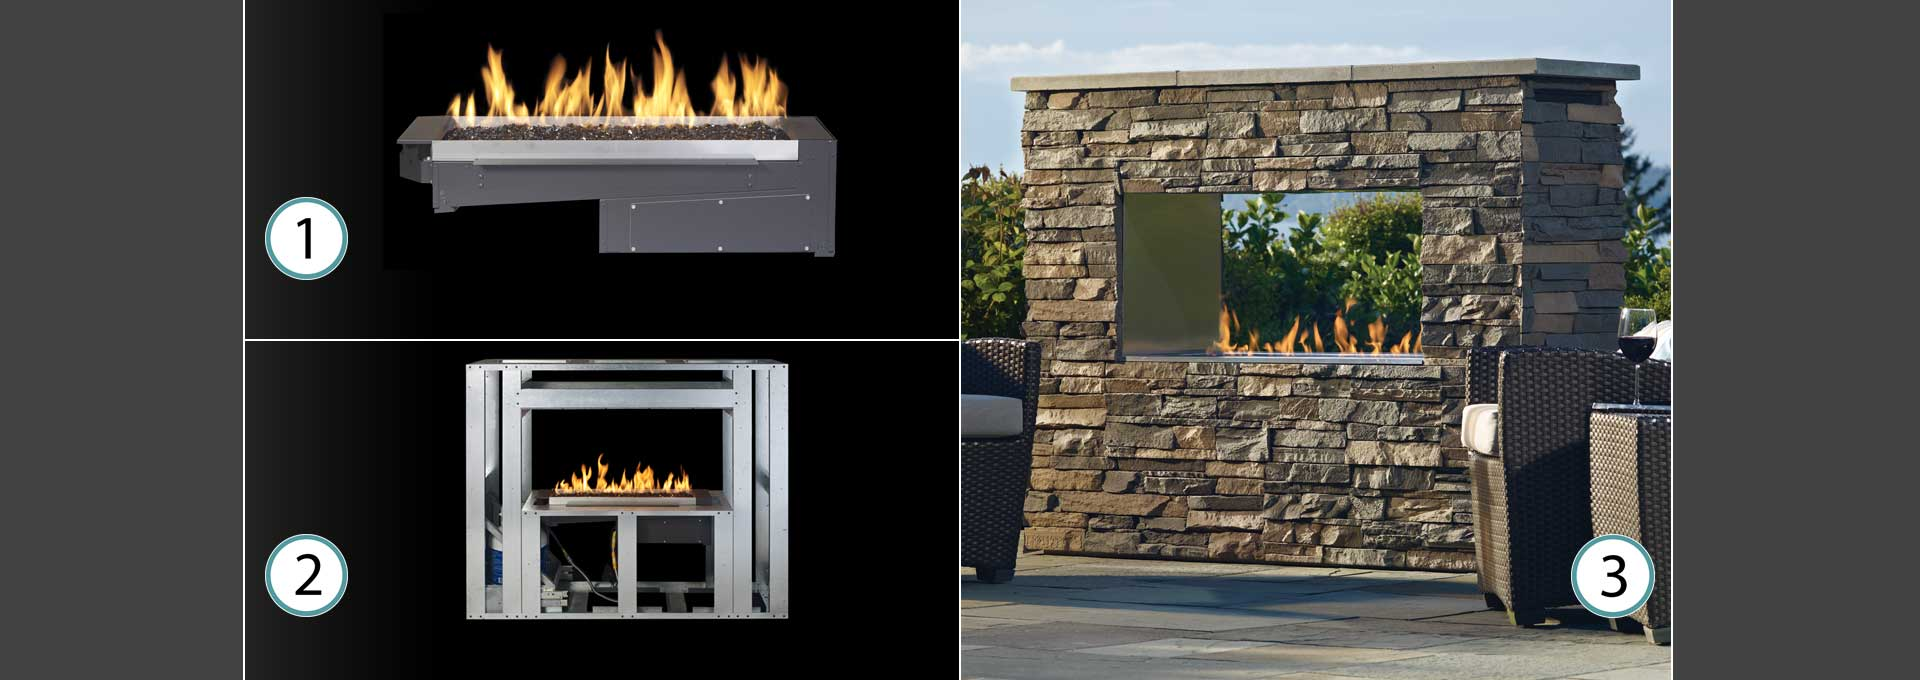 outdoor gas fireplace kit. 1 2 3 Framing Kit and Burner Outdoor Gas Fireplaces  Firepits Firetables